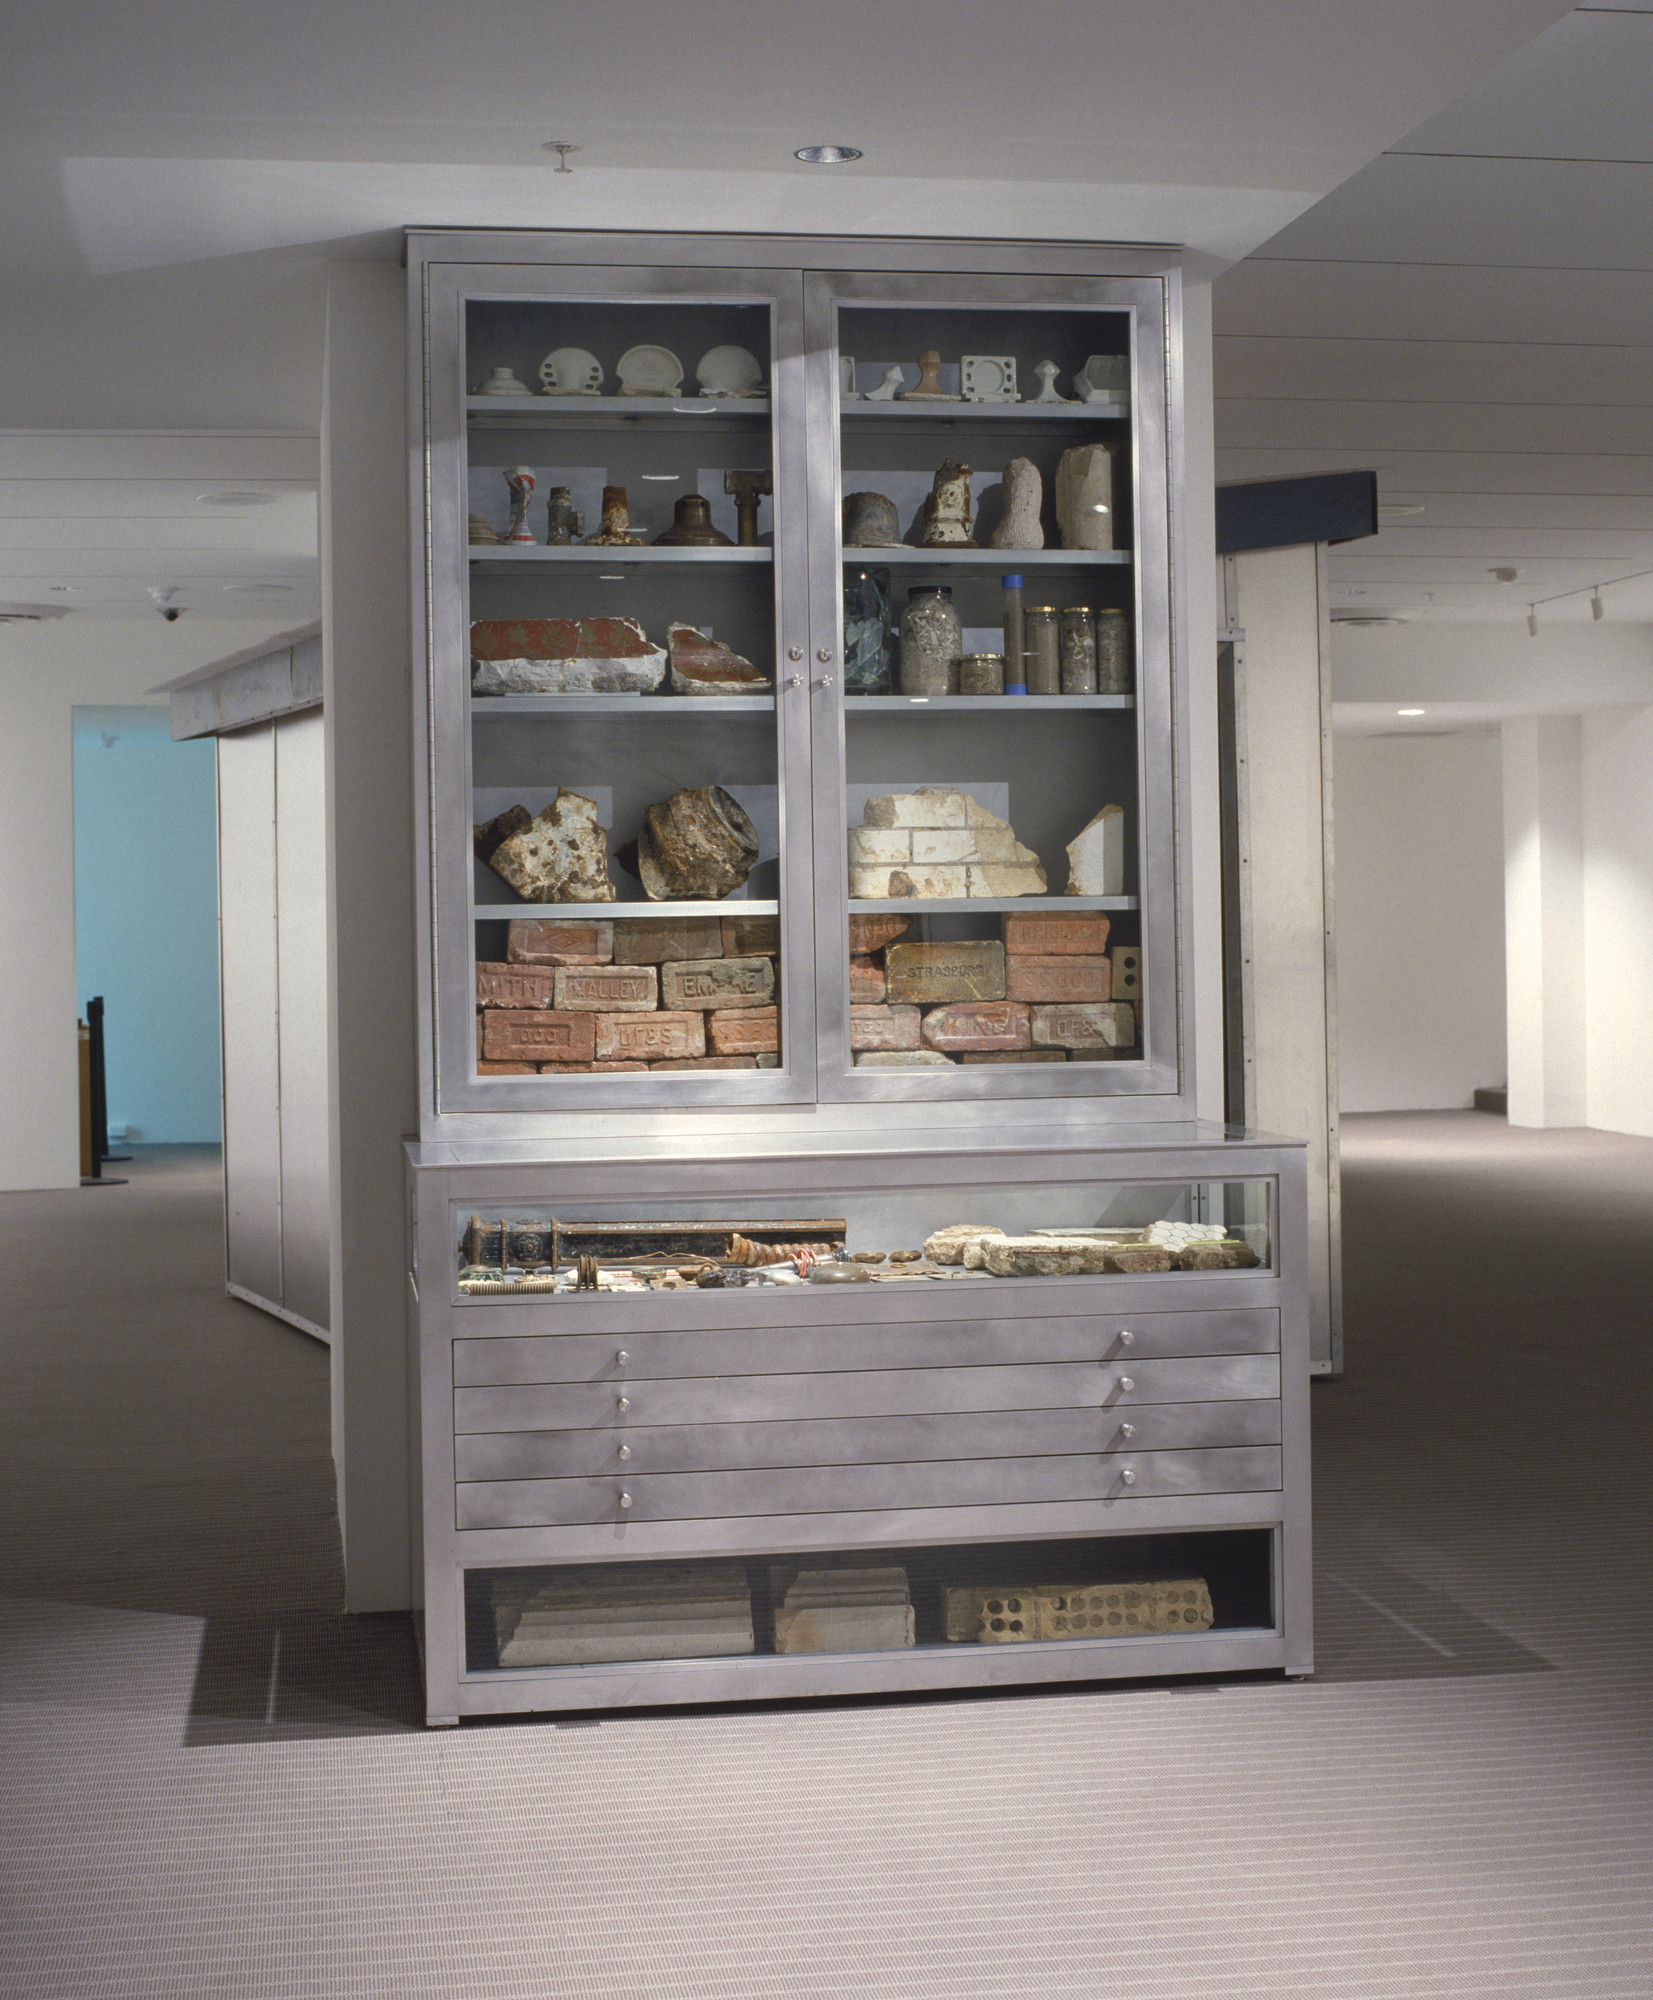 Mark Dion Cabinet From Project 82 Rescue Archeology A